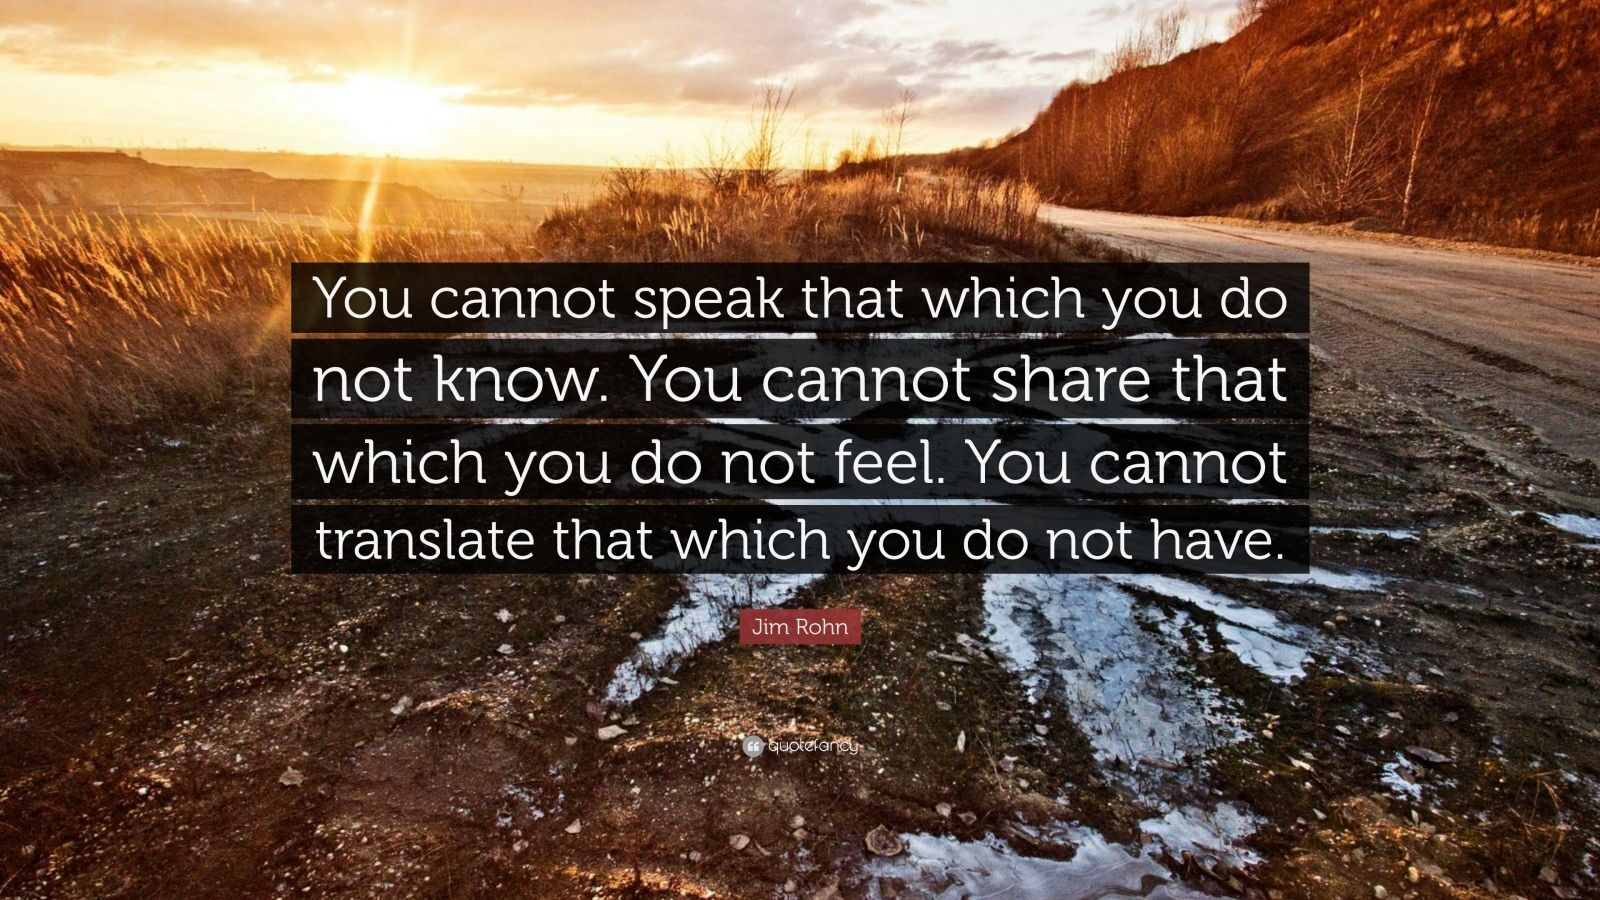 """Jim Rohn Quote: """"You cannot speak that which you do not know. You cannot share that which you do not feel. You cannot translate that which you do not have."""""""